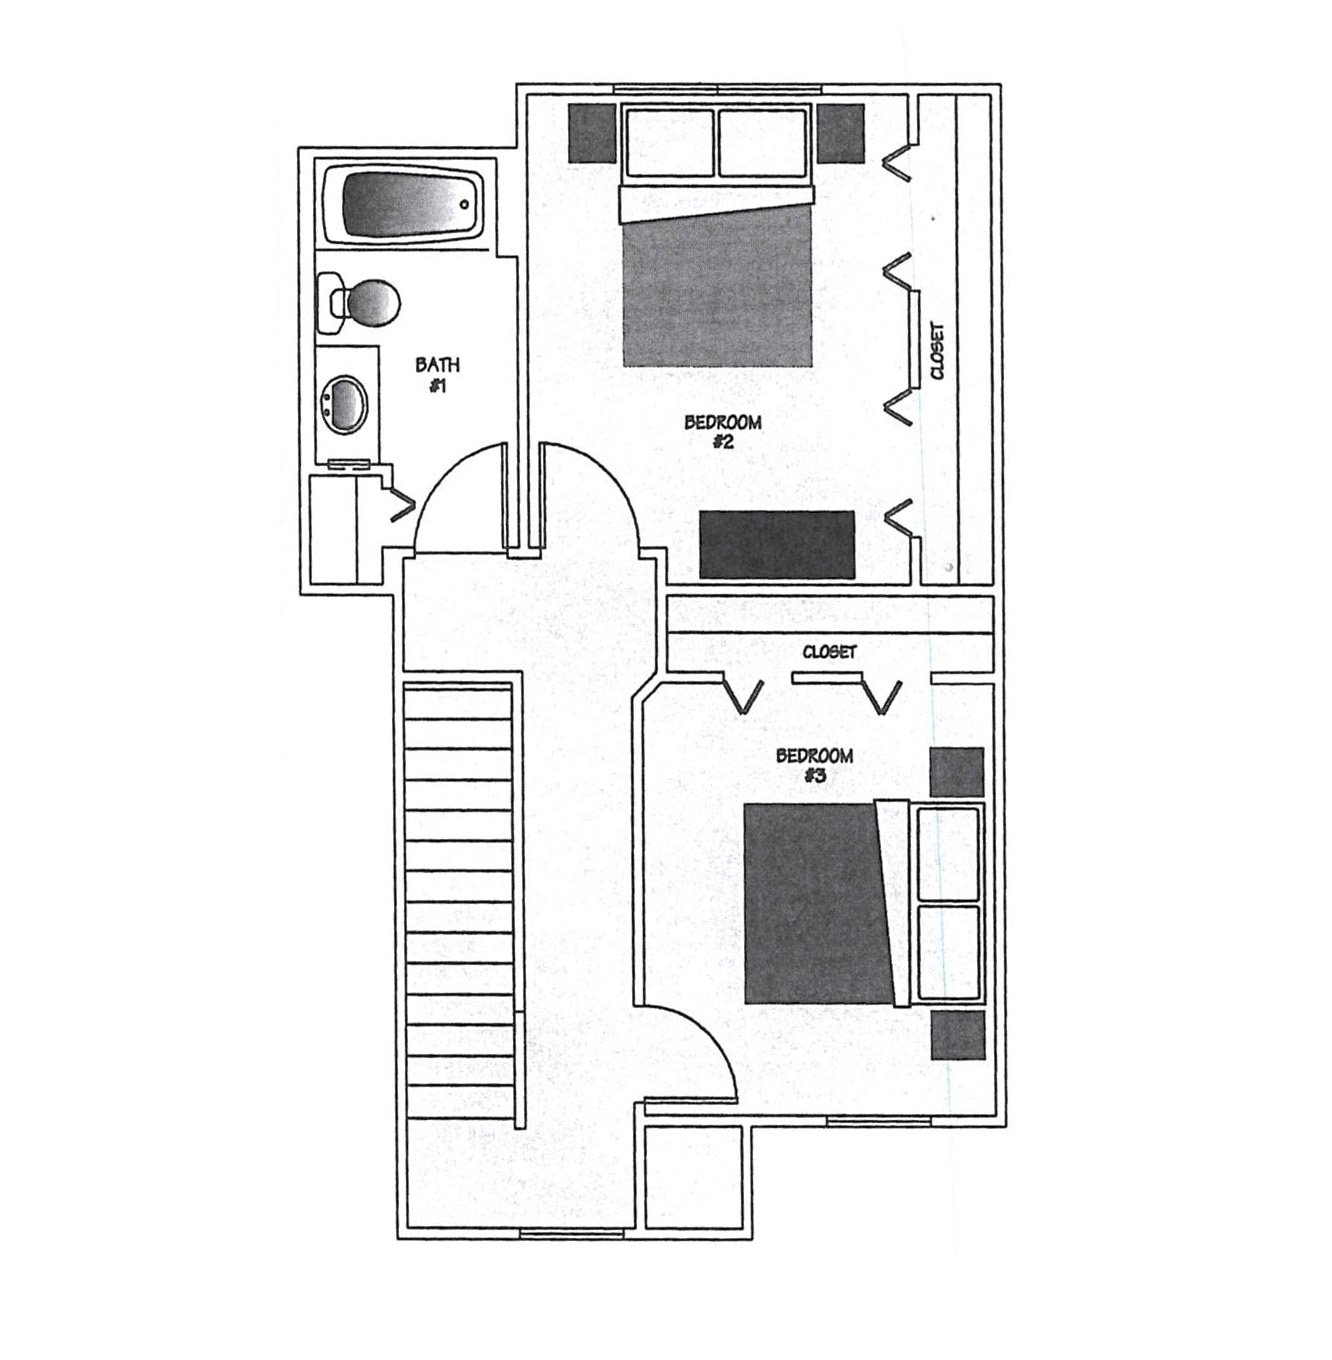 Floorplan at Palms at Lake Tulane, 1033 Hal McRae Loop, FL 33825